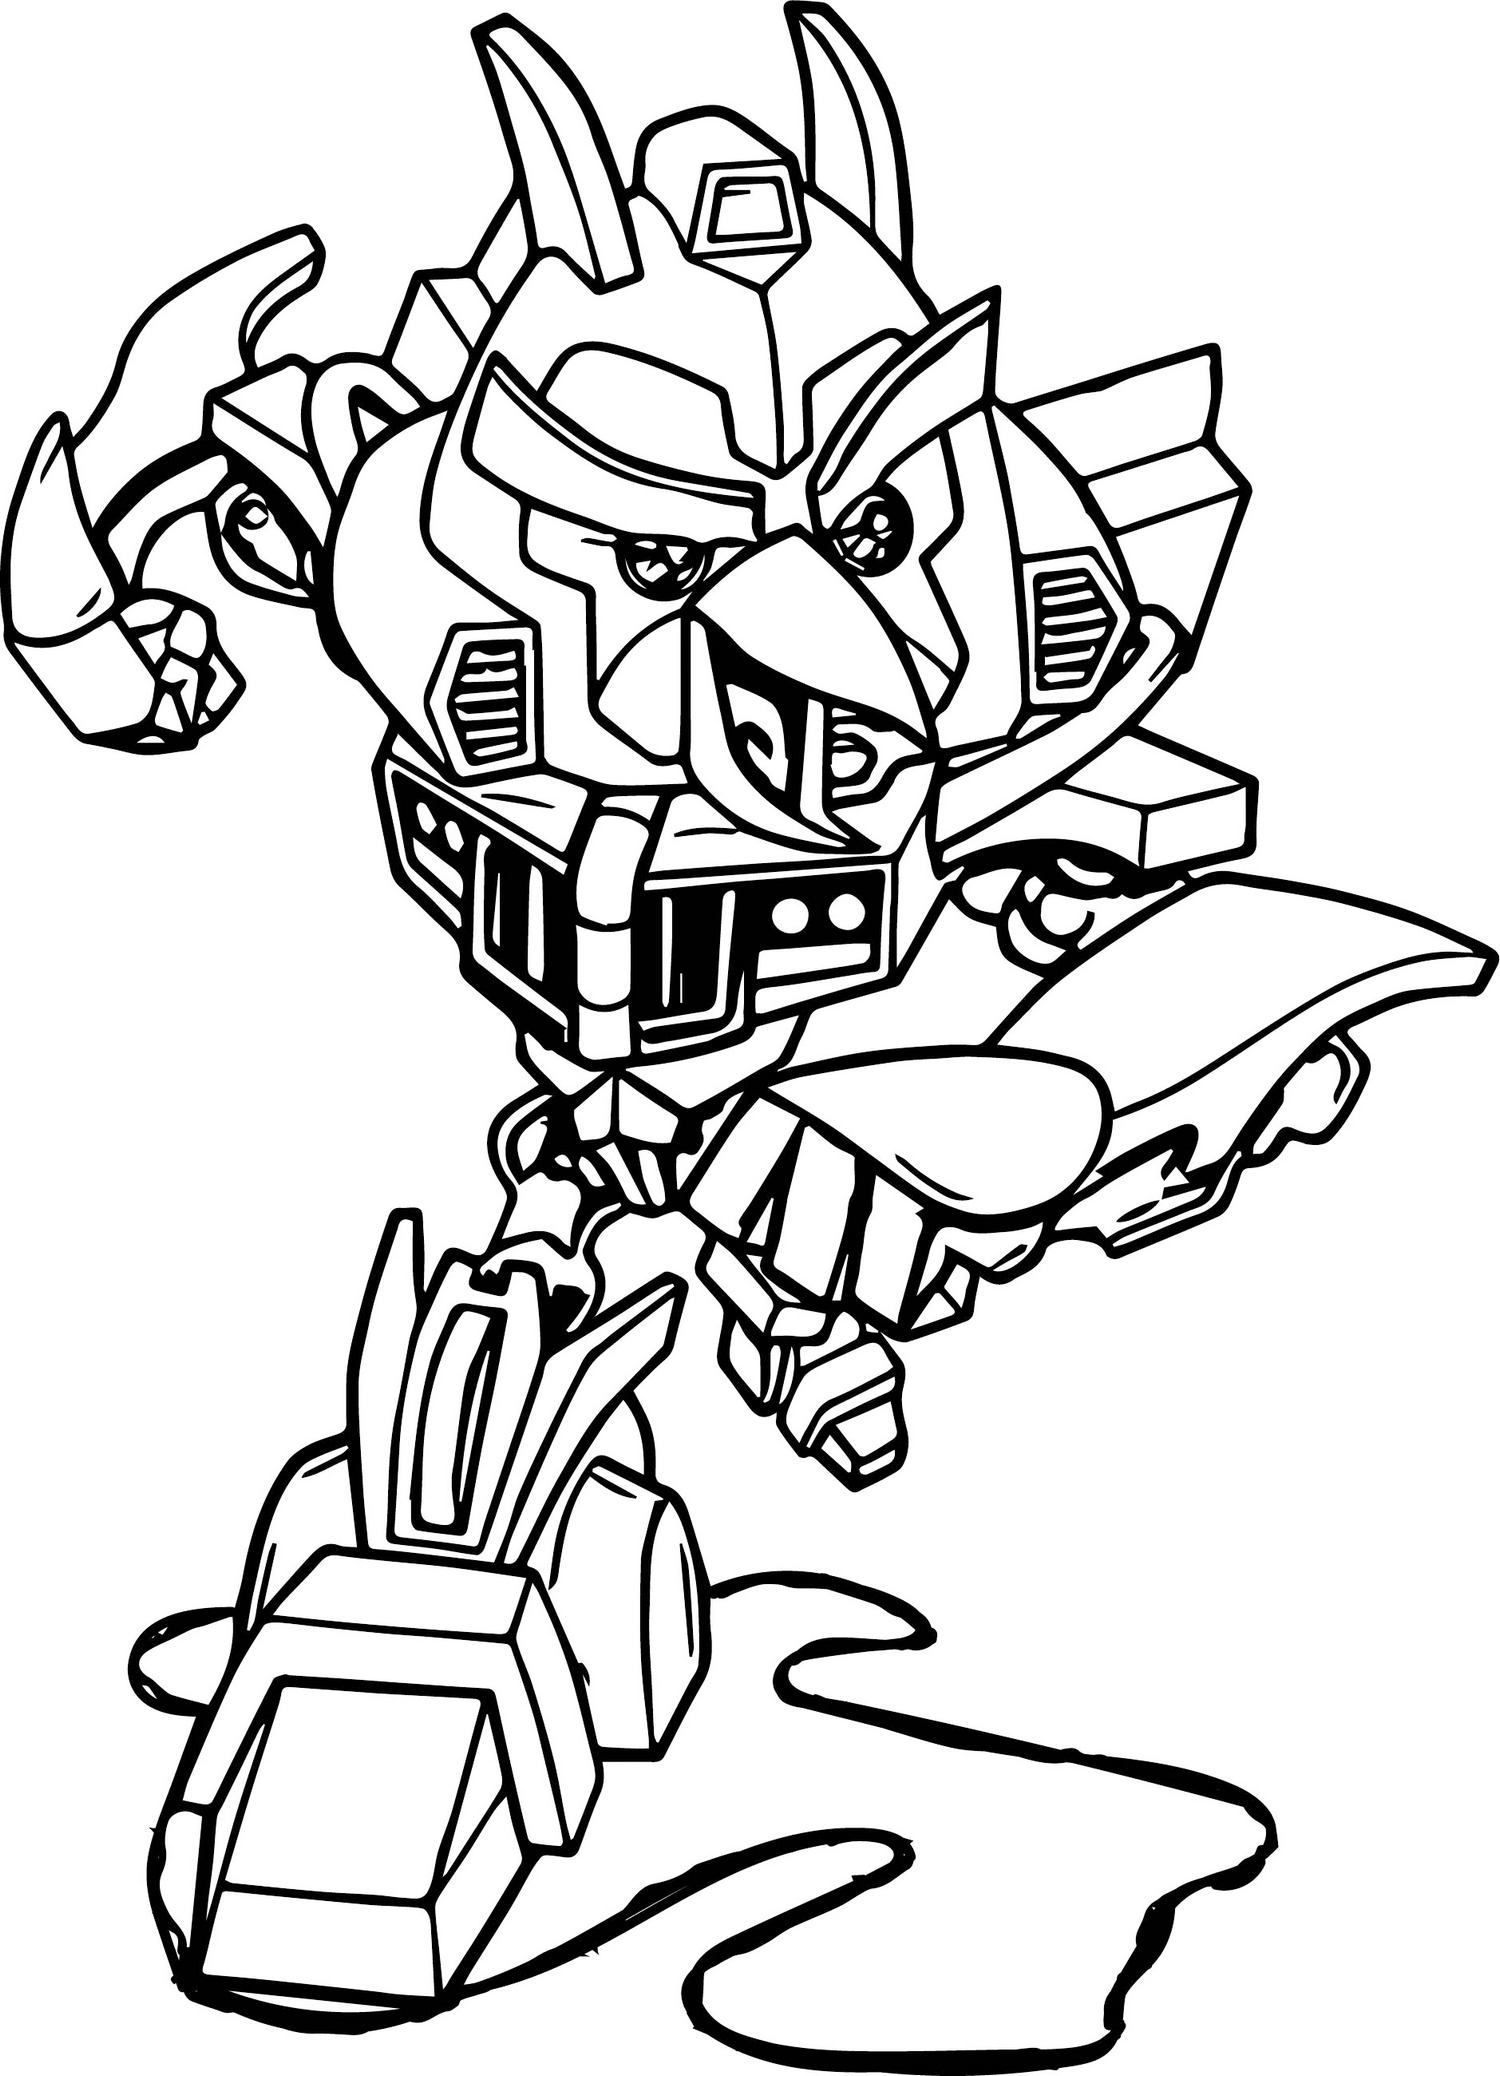 Angry Bird Transformers Bumblebee Coloring Sheet Libro De Dinosaurios Para Colorear Paginas Para Colorear Libro De Colores